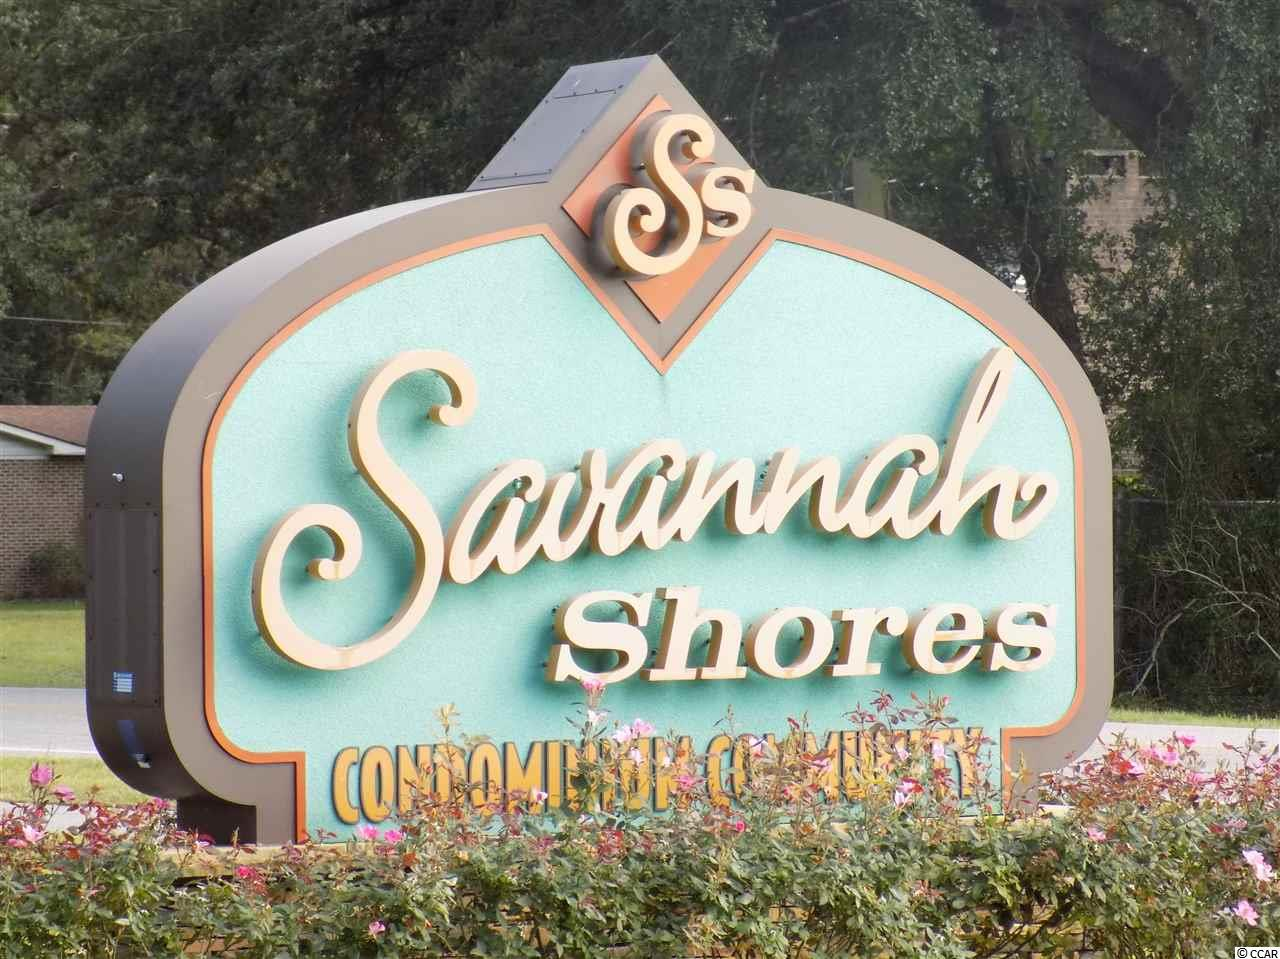 Have you seen this  Savannah Shores property for sale in Myrtle Beach